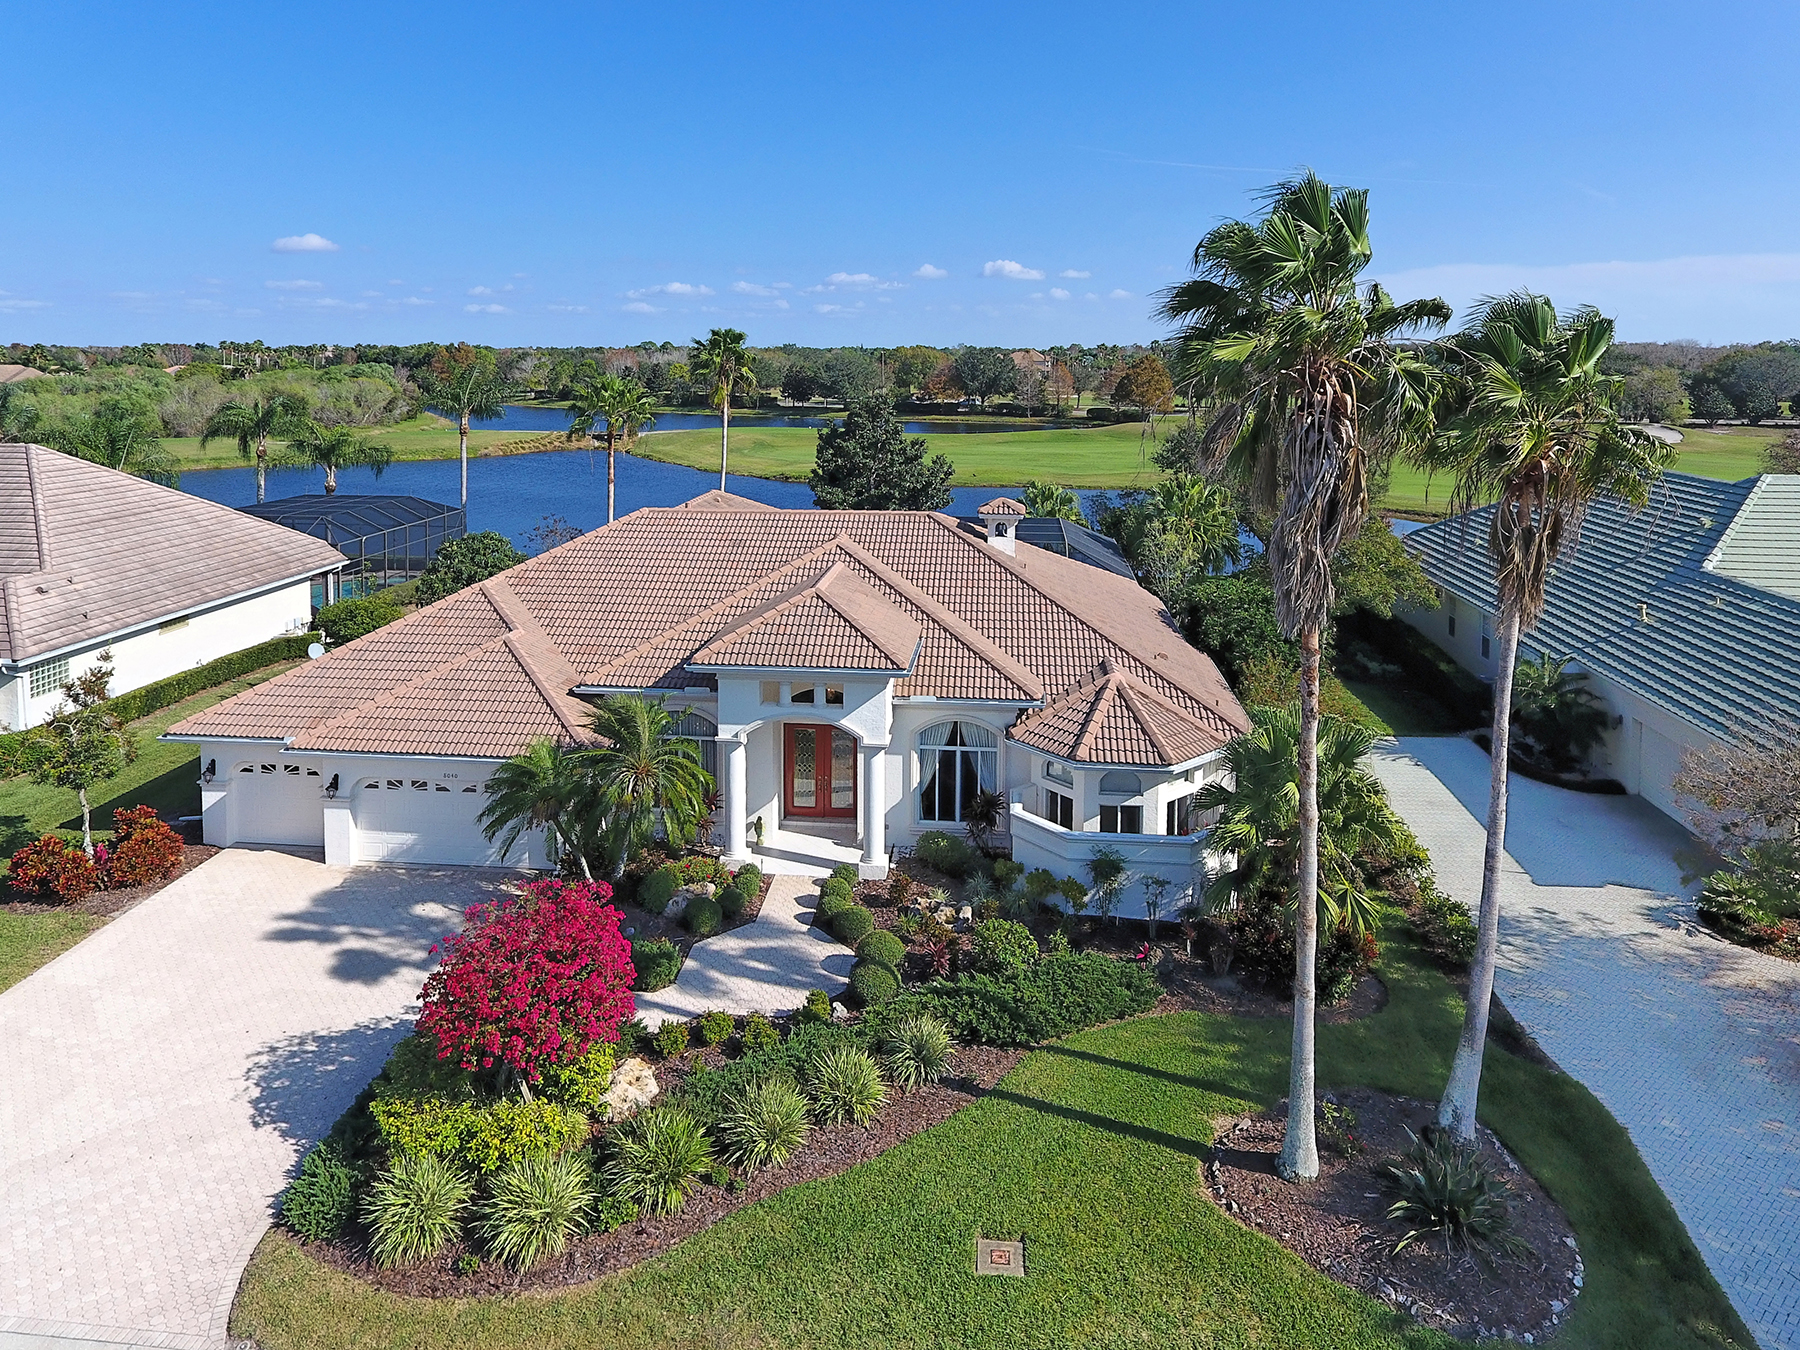 Single Family Home for Sale at LAKEWOOD RANCH COUNTRY CLUB 8040 Royal Birkdale Cir Lakewood Ranch, Florida, 34202 United States